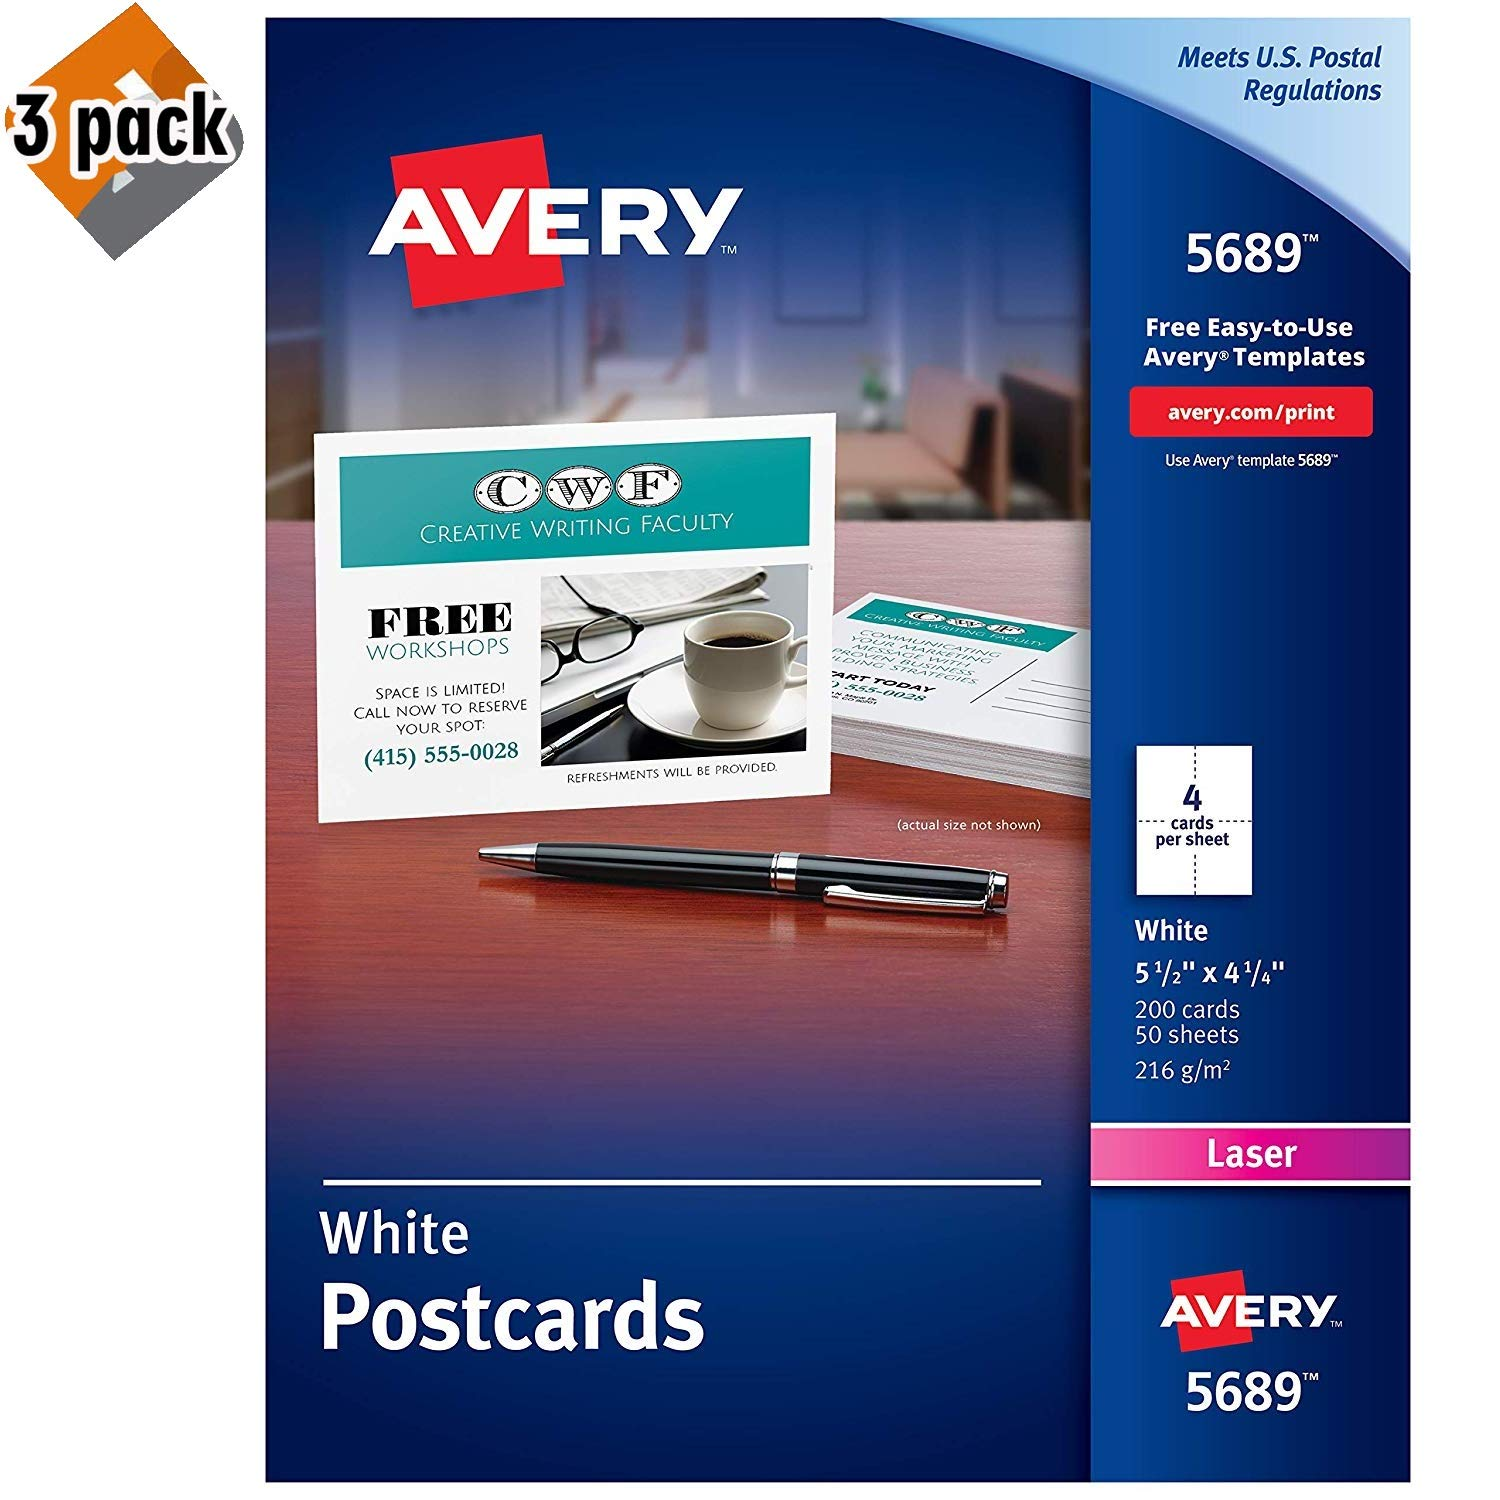 Avery Printable Cards, Laser Printers, 200 Cards, 4.25 x 5.5, U.S. Post Card Size (5689) - 3 Pack by AVERY